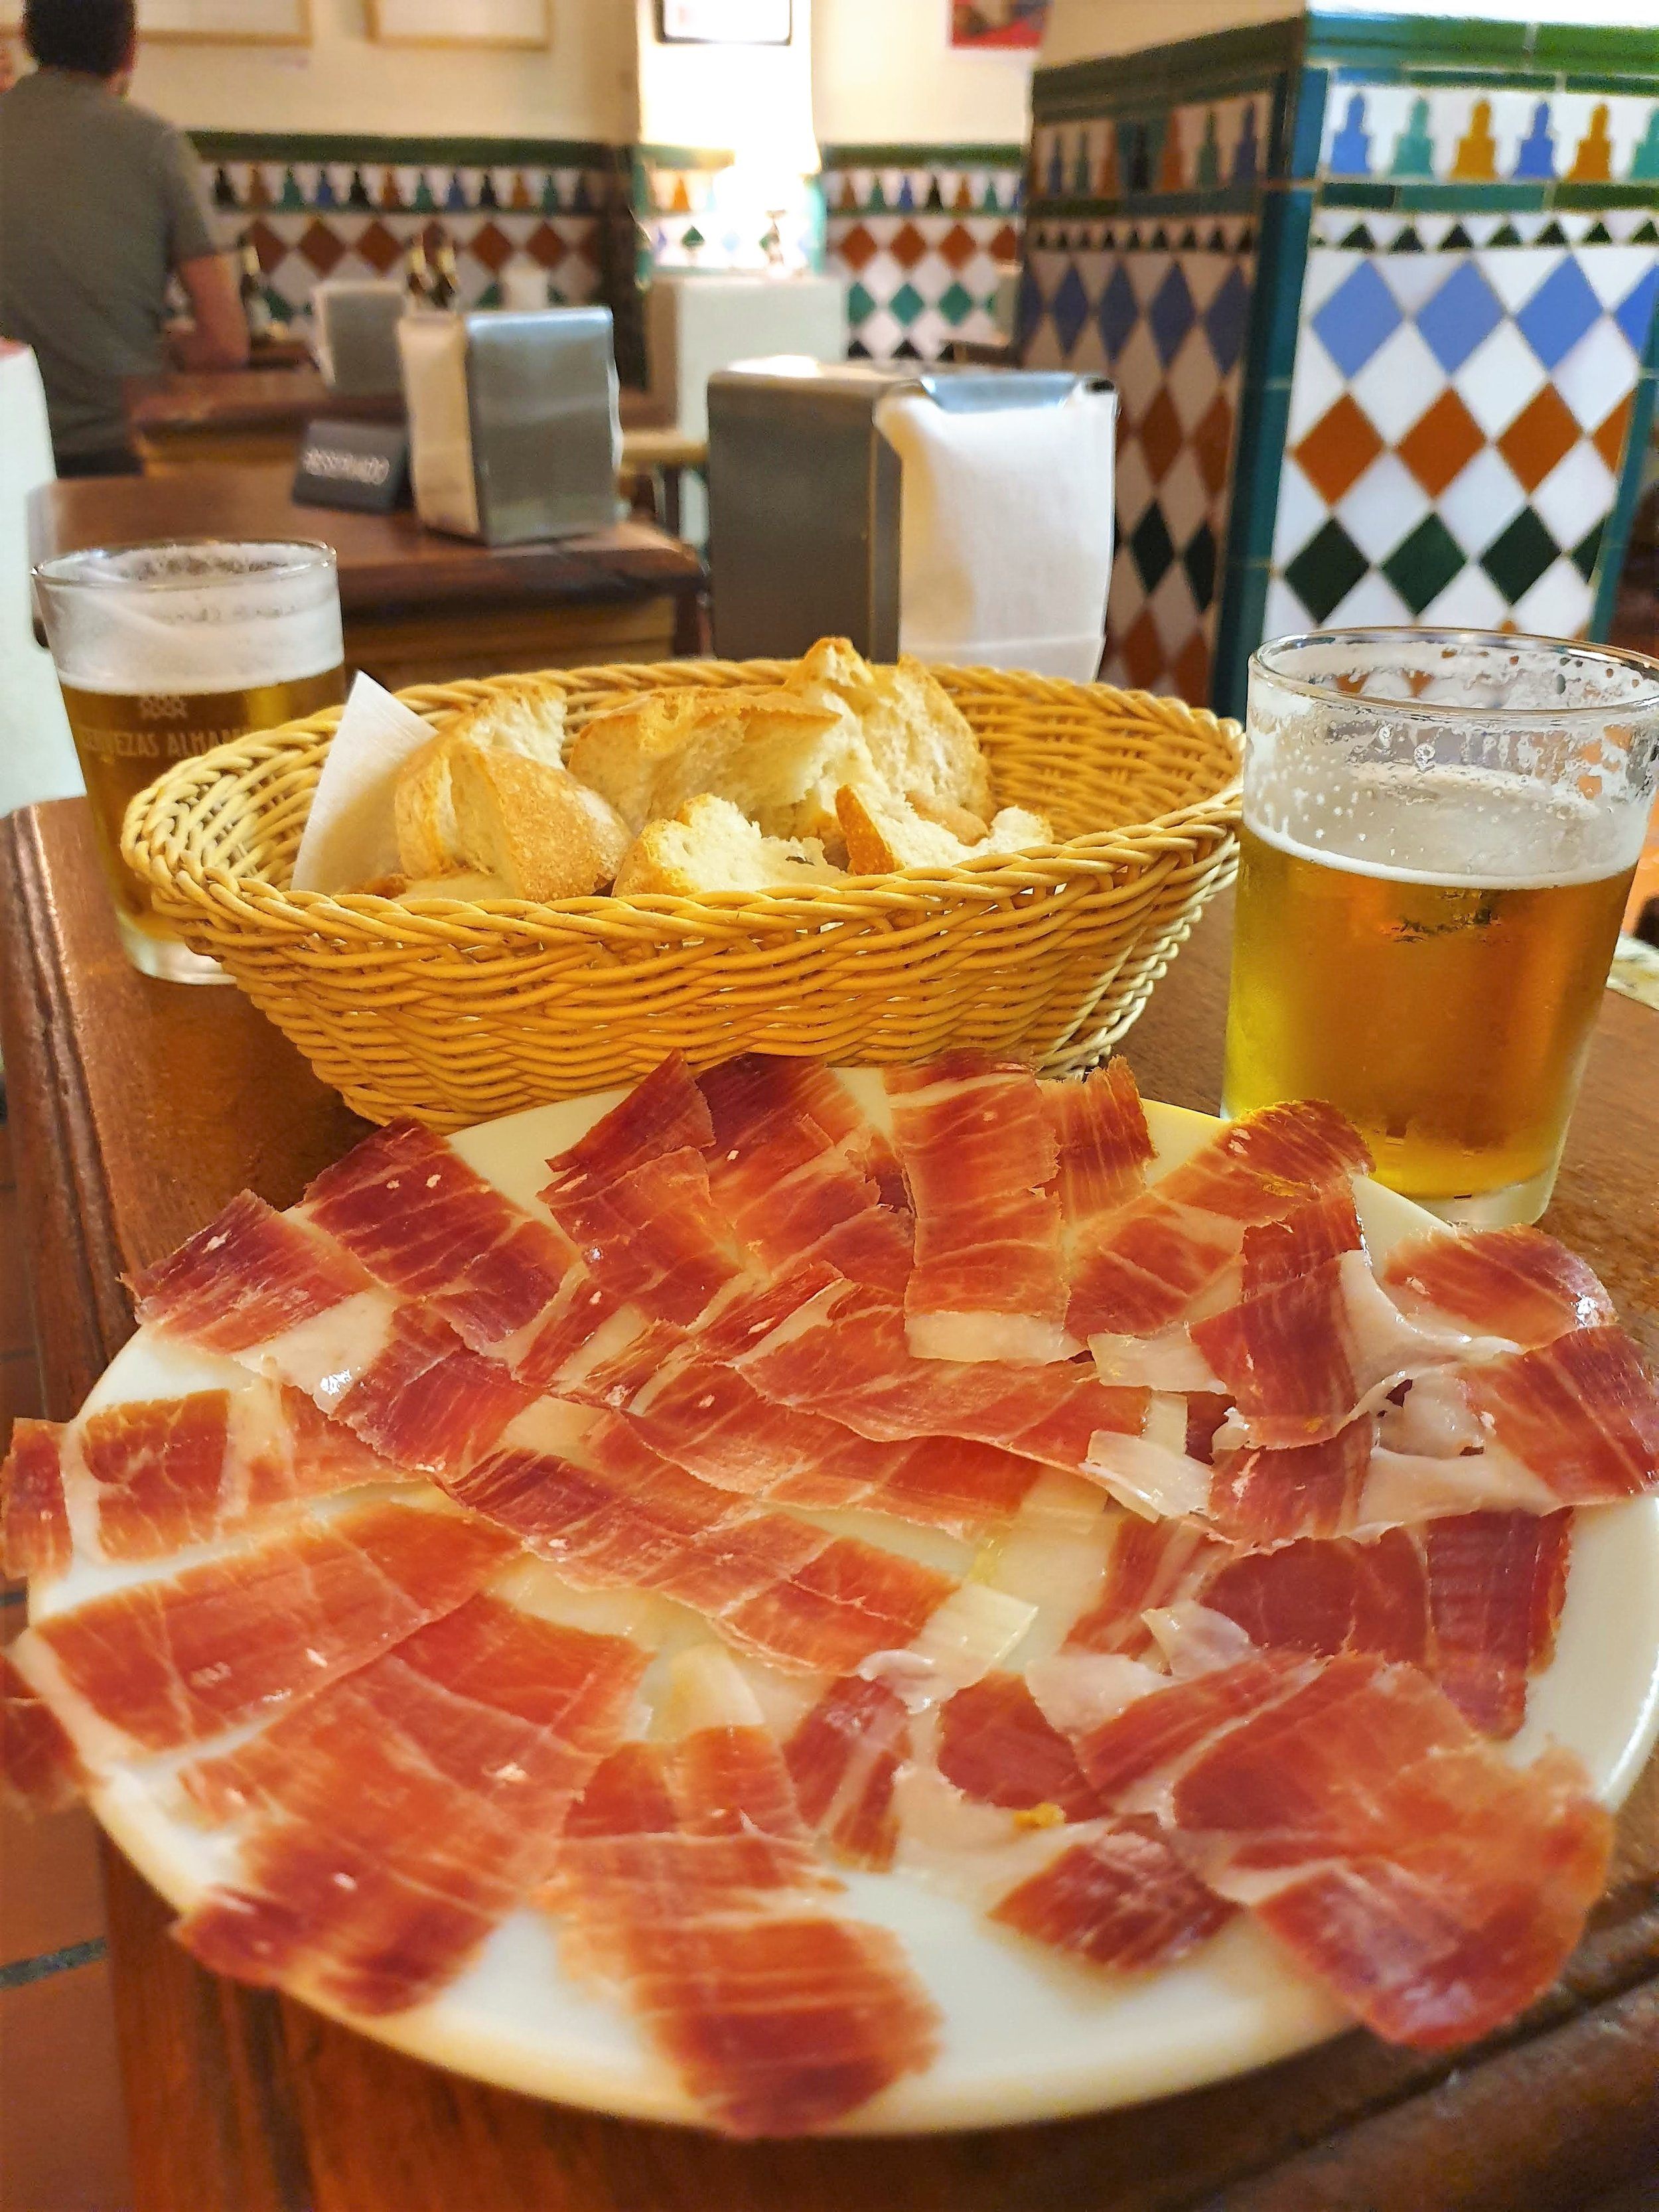 Be sure to savor the sensory experience of your ham, especially  jamón de bellota  which essentially melts in your mouth.